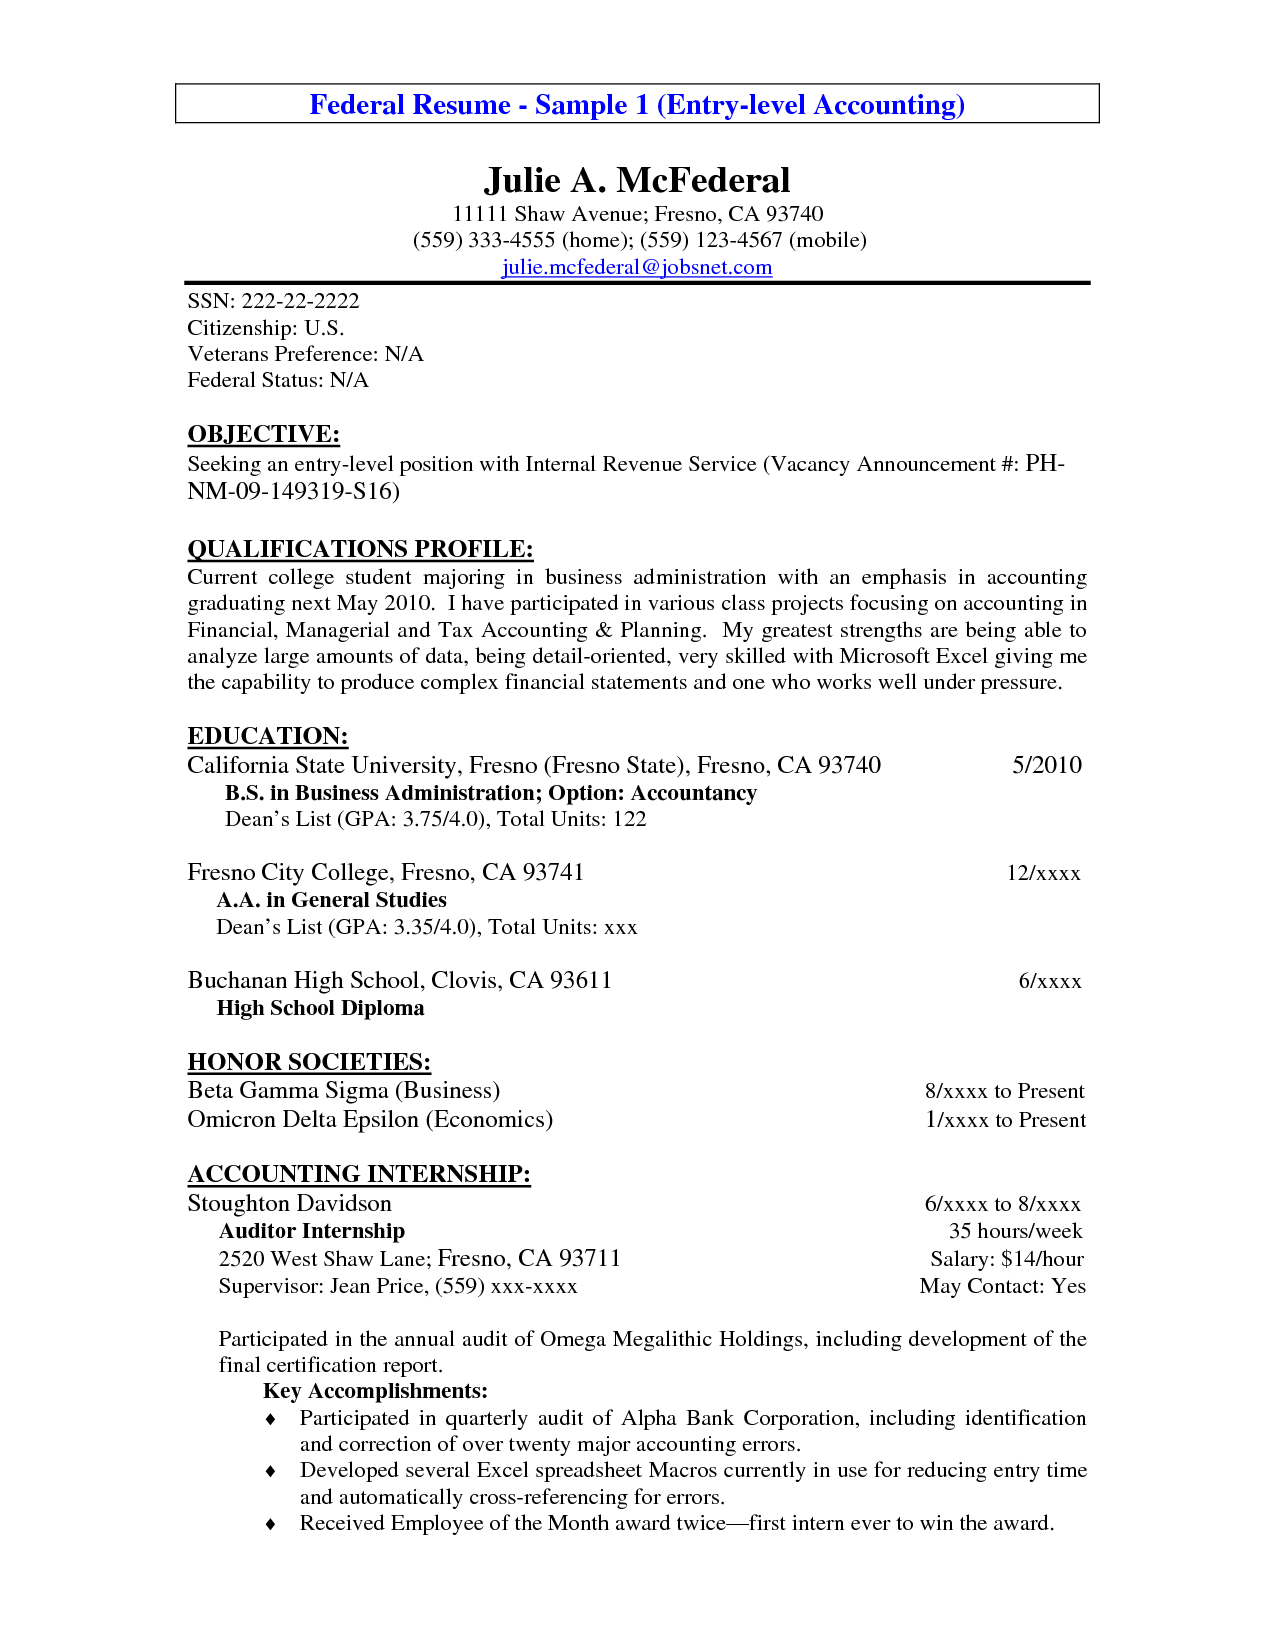 Objectives On A Resume Accounting Resume Objectives Read More  Httpwww